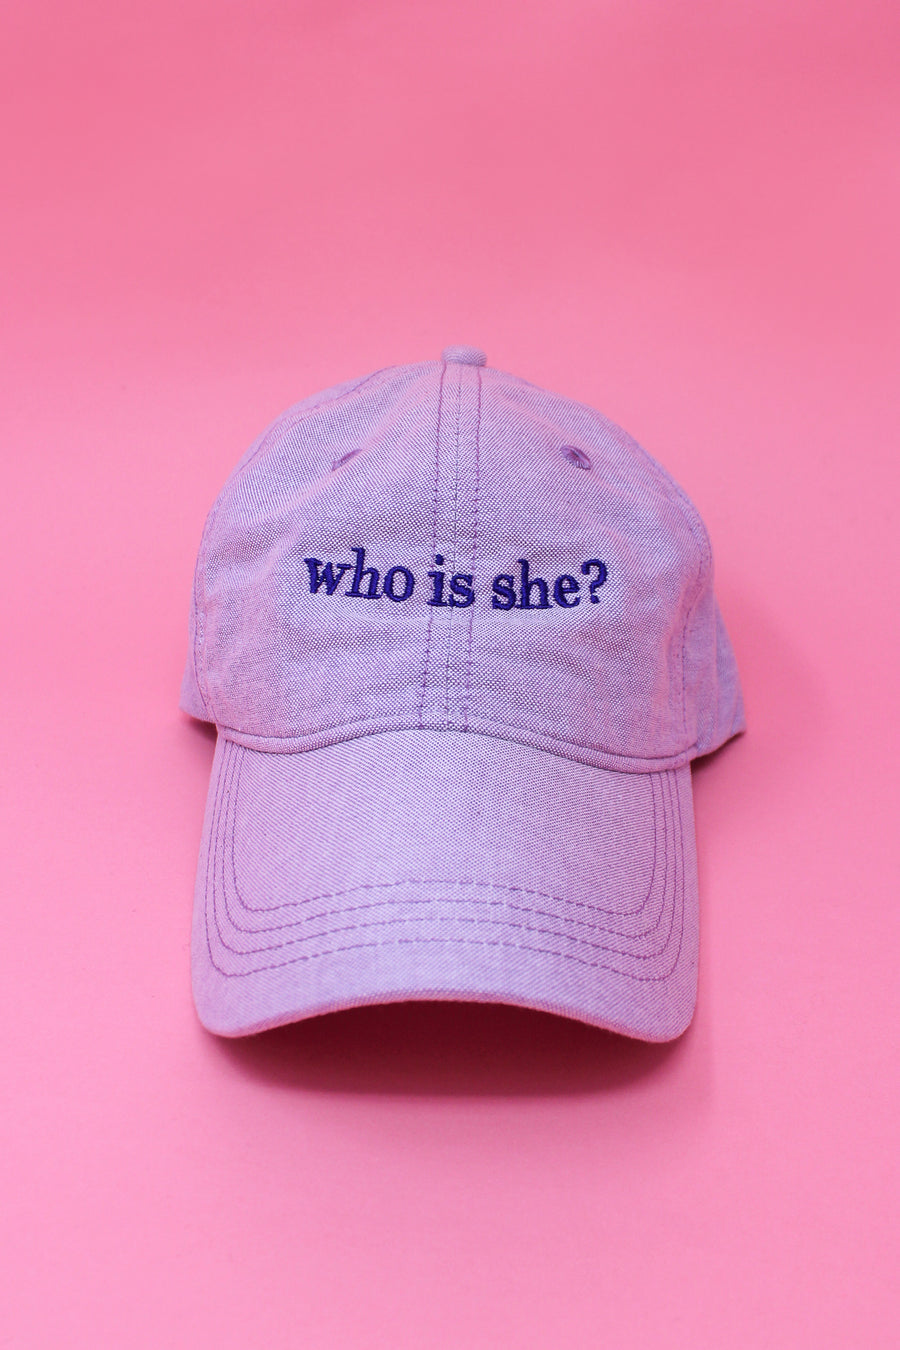 Who is She? Baseball Cap